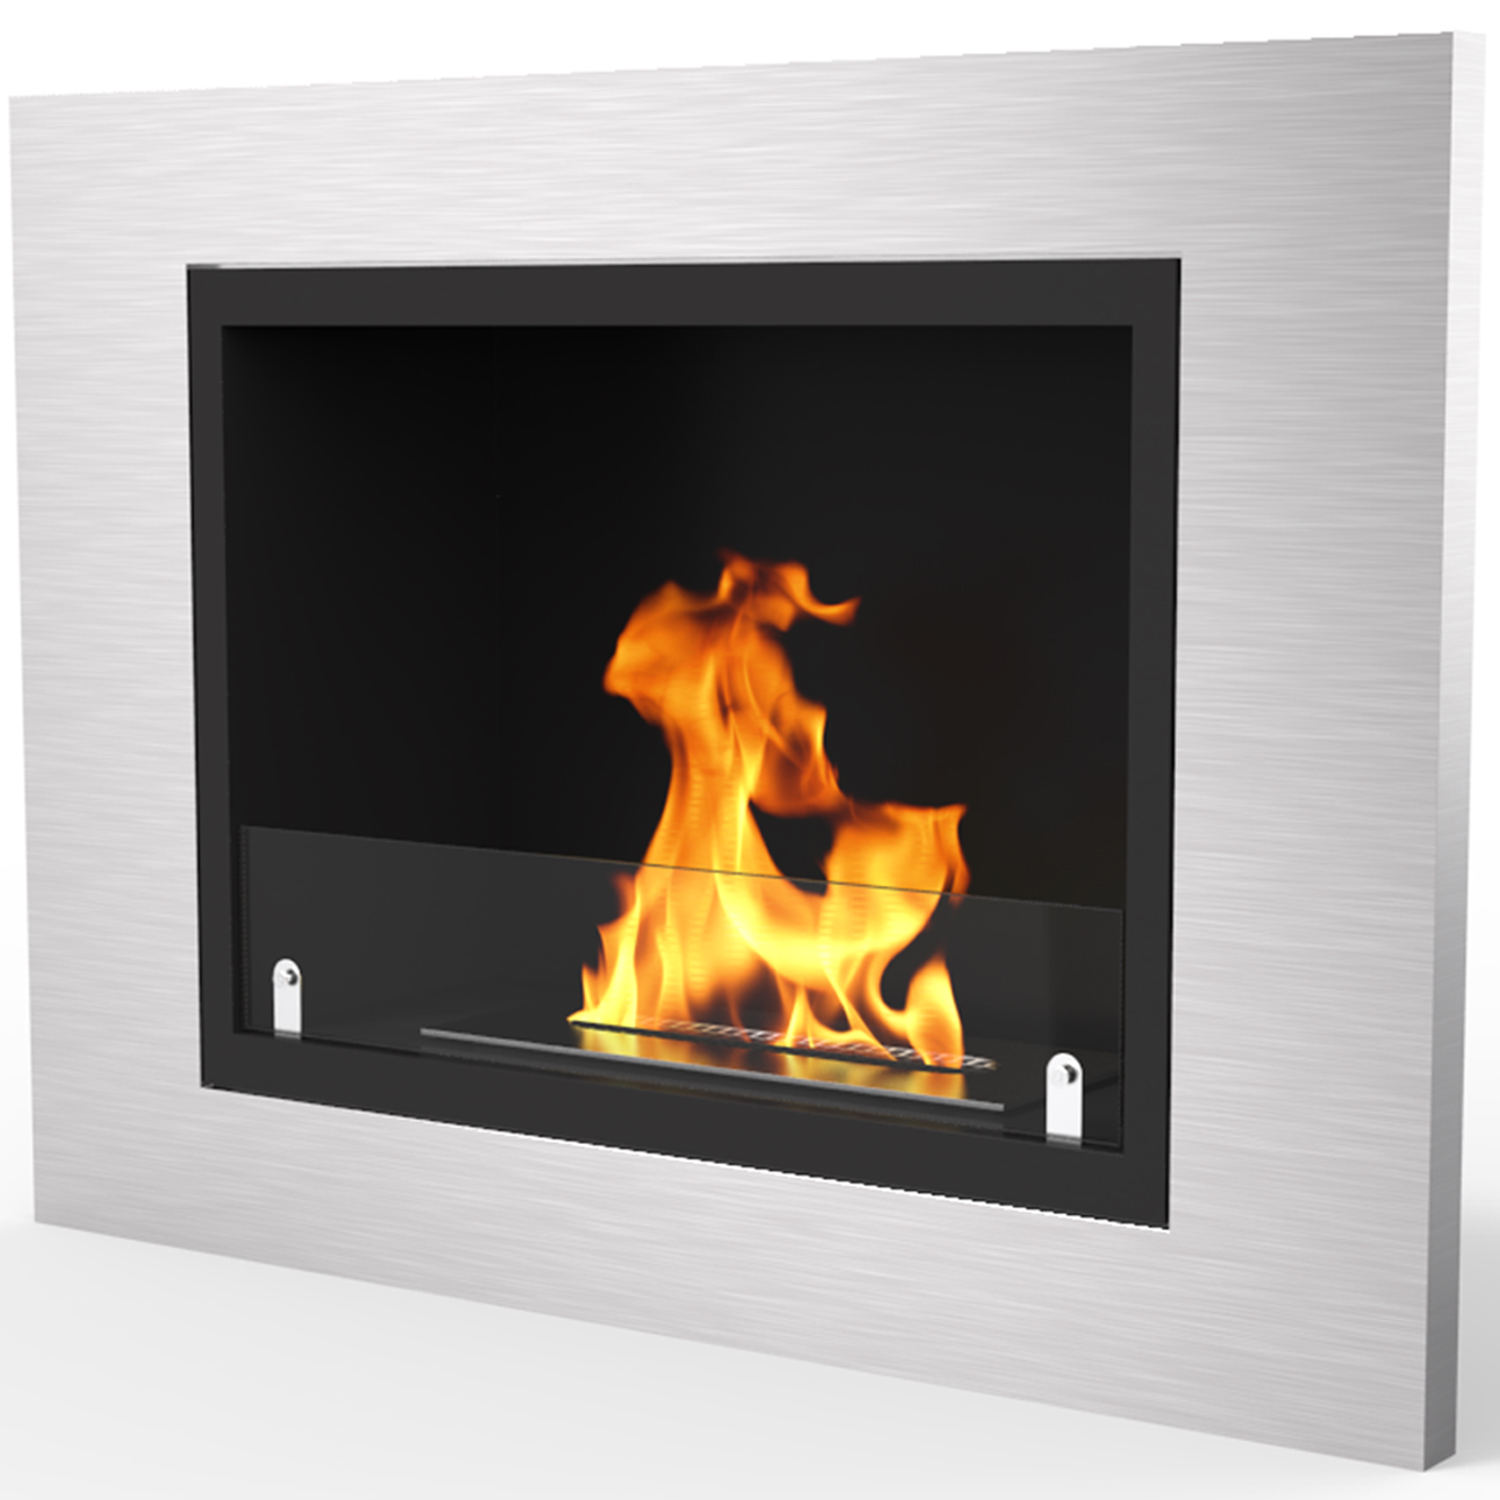 at bio luxury fireplace classy home fireplaces design simple amazing